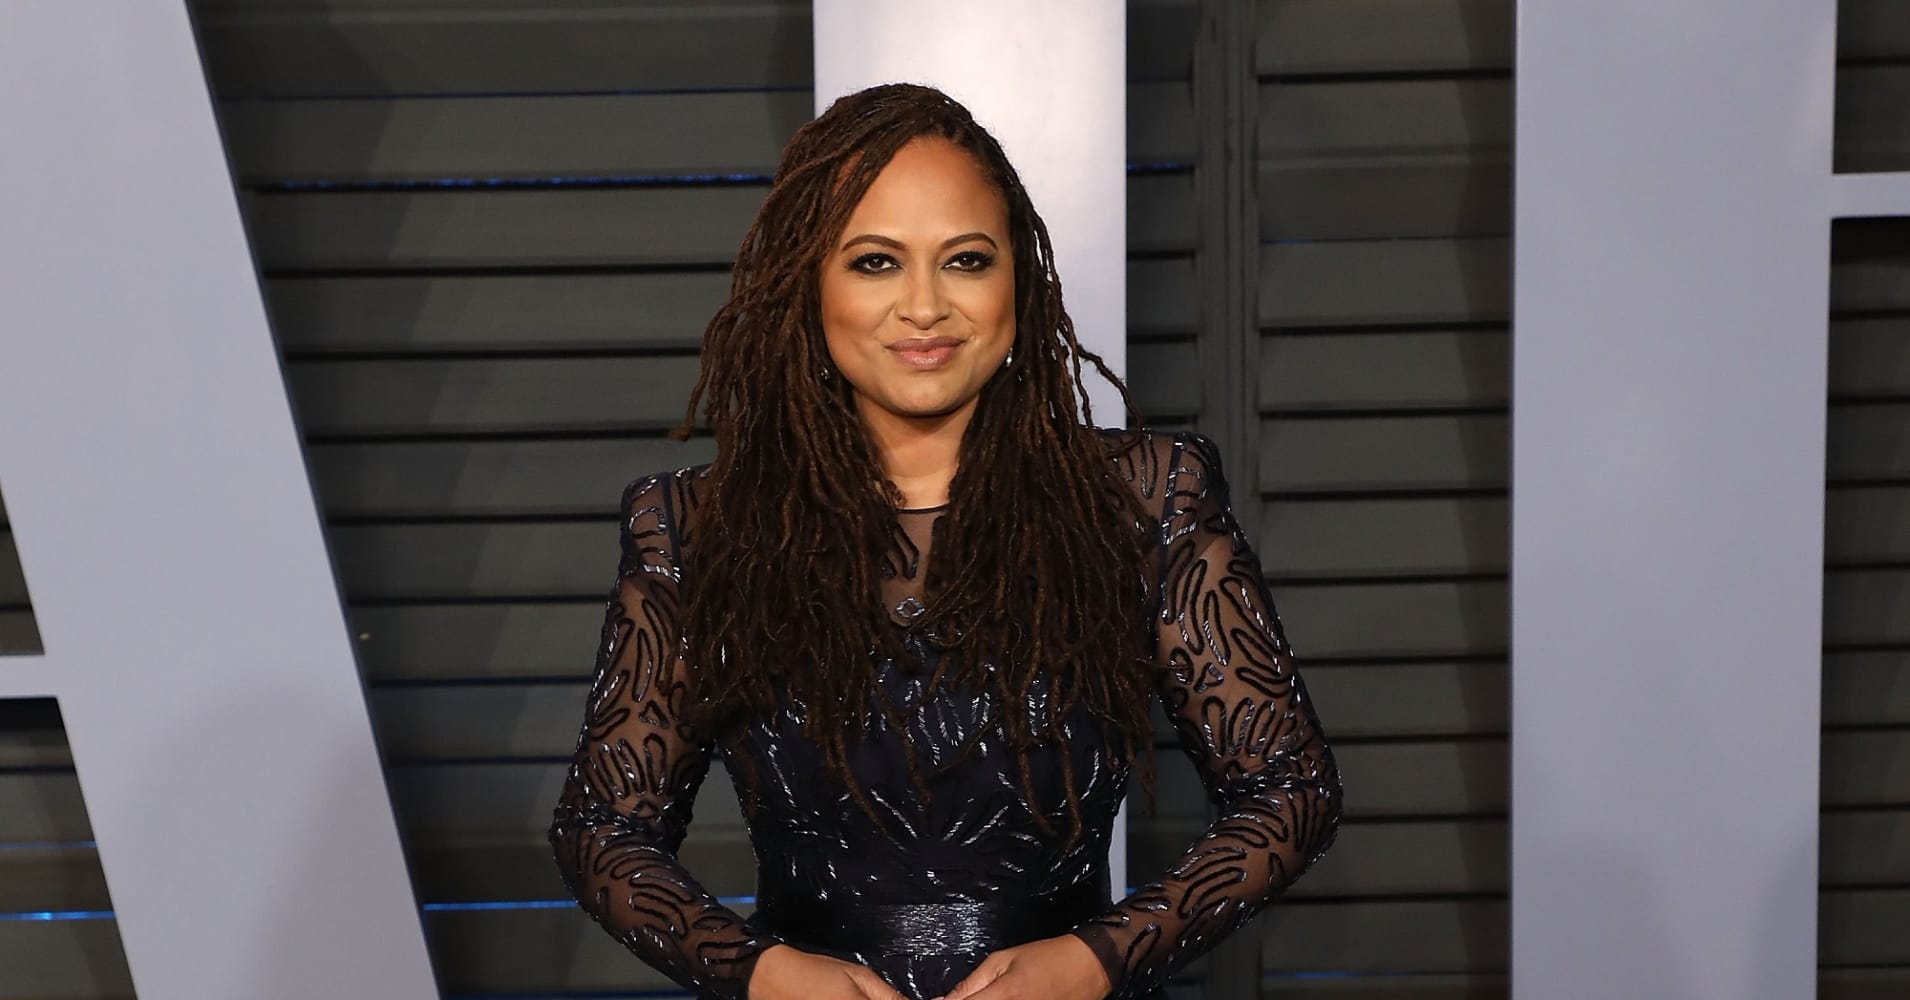 How a career change at 32 led Ava DuVernay to become the first black woman to direct a $100 million film